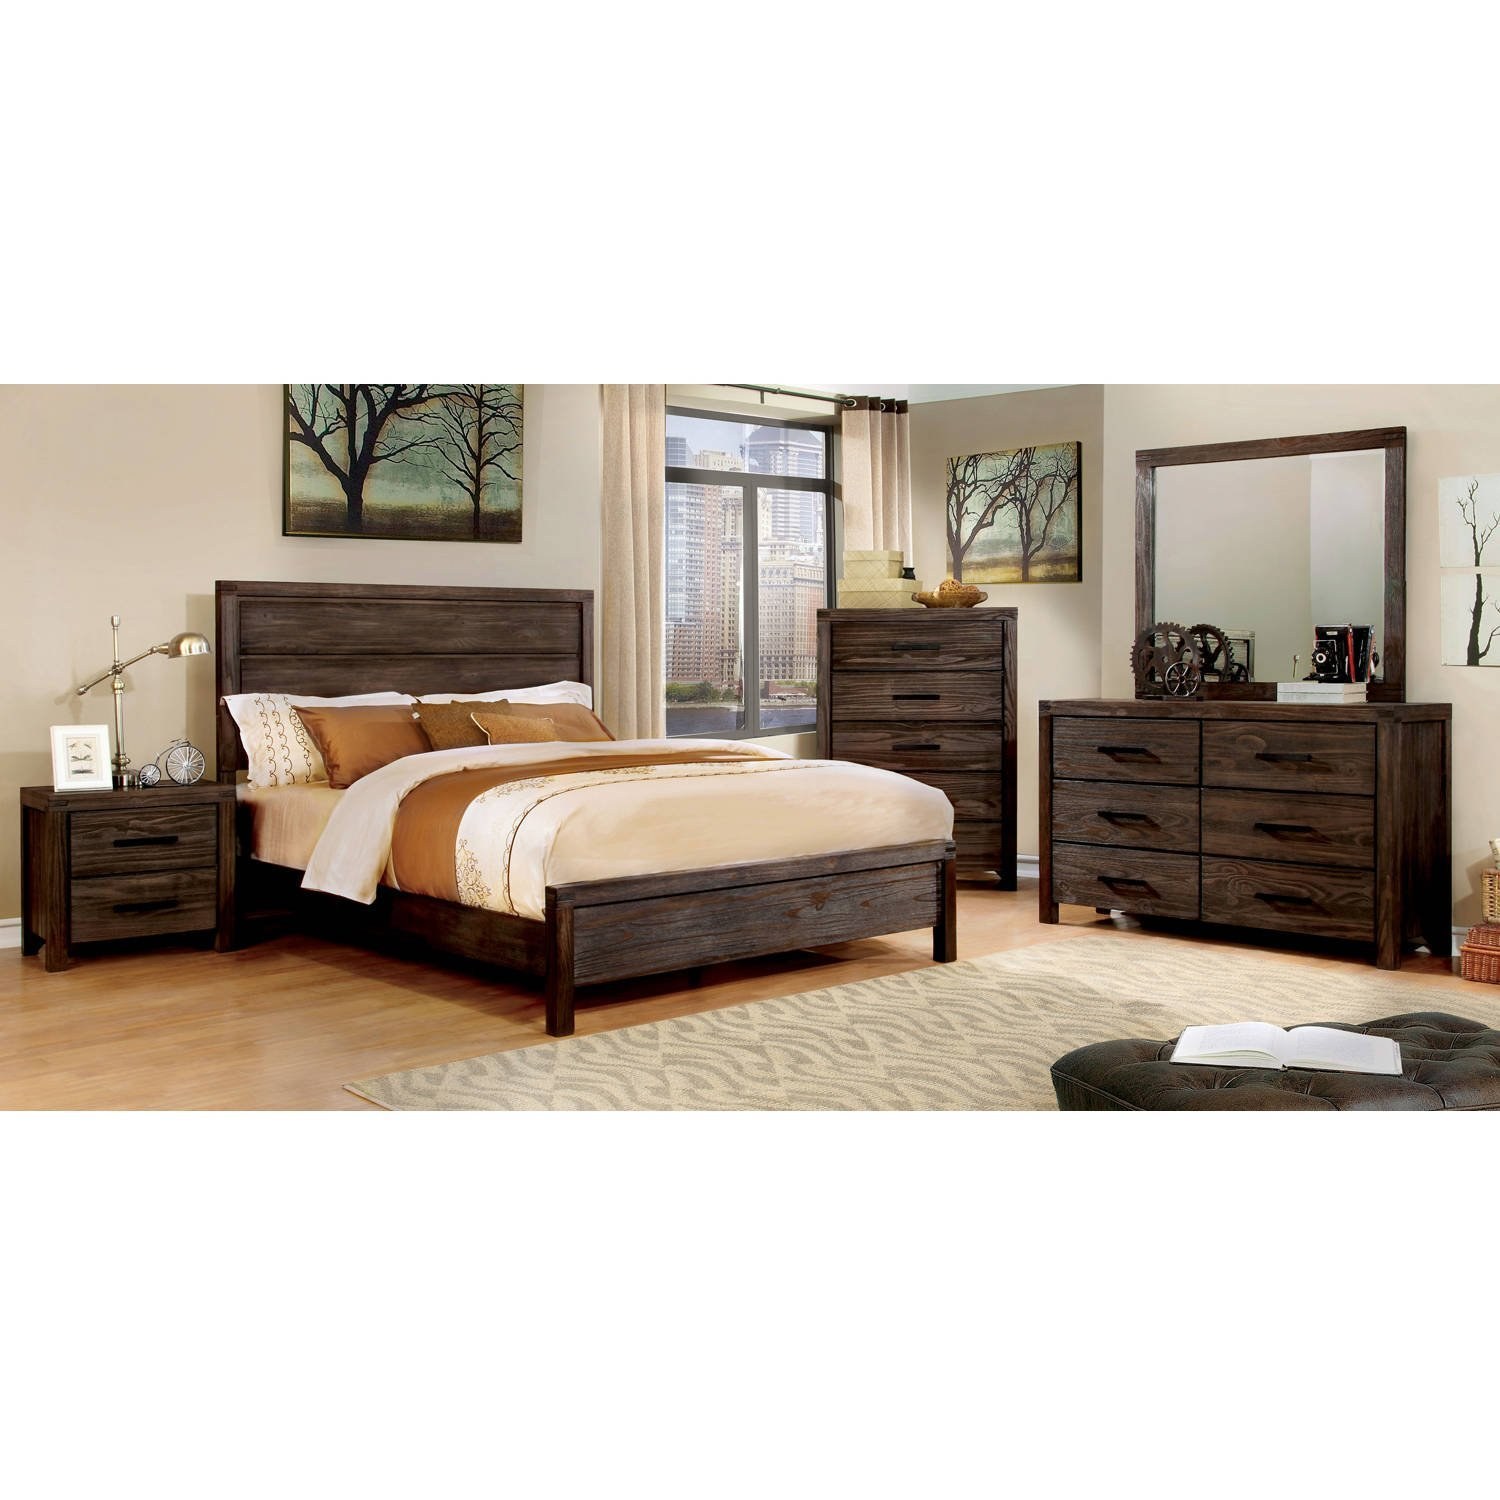 5-Drawer Chest, Dark Grey, Wood Grain Drawer Panels, Bundle with Ebook for Home Furnitures